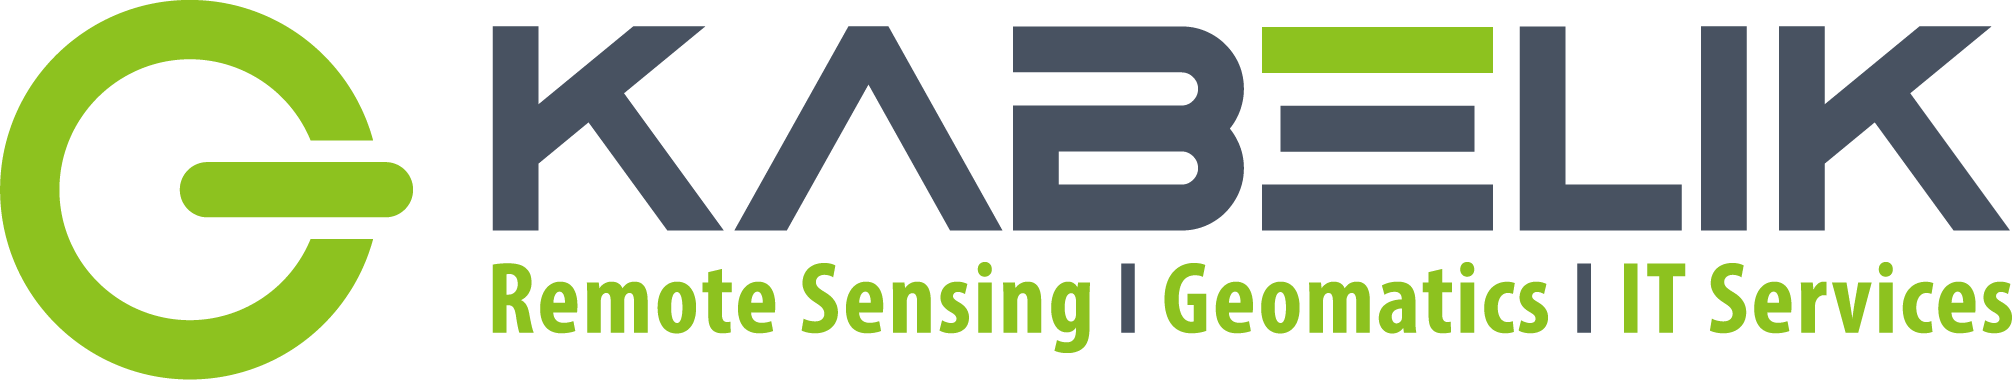 Kabelik GmbH your Partner for Remote Sensing, Geomatics and IT Services